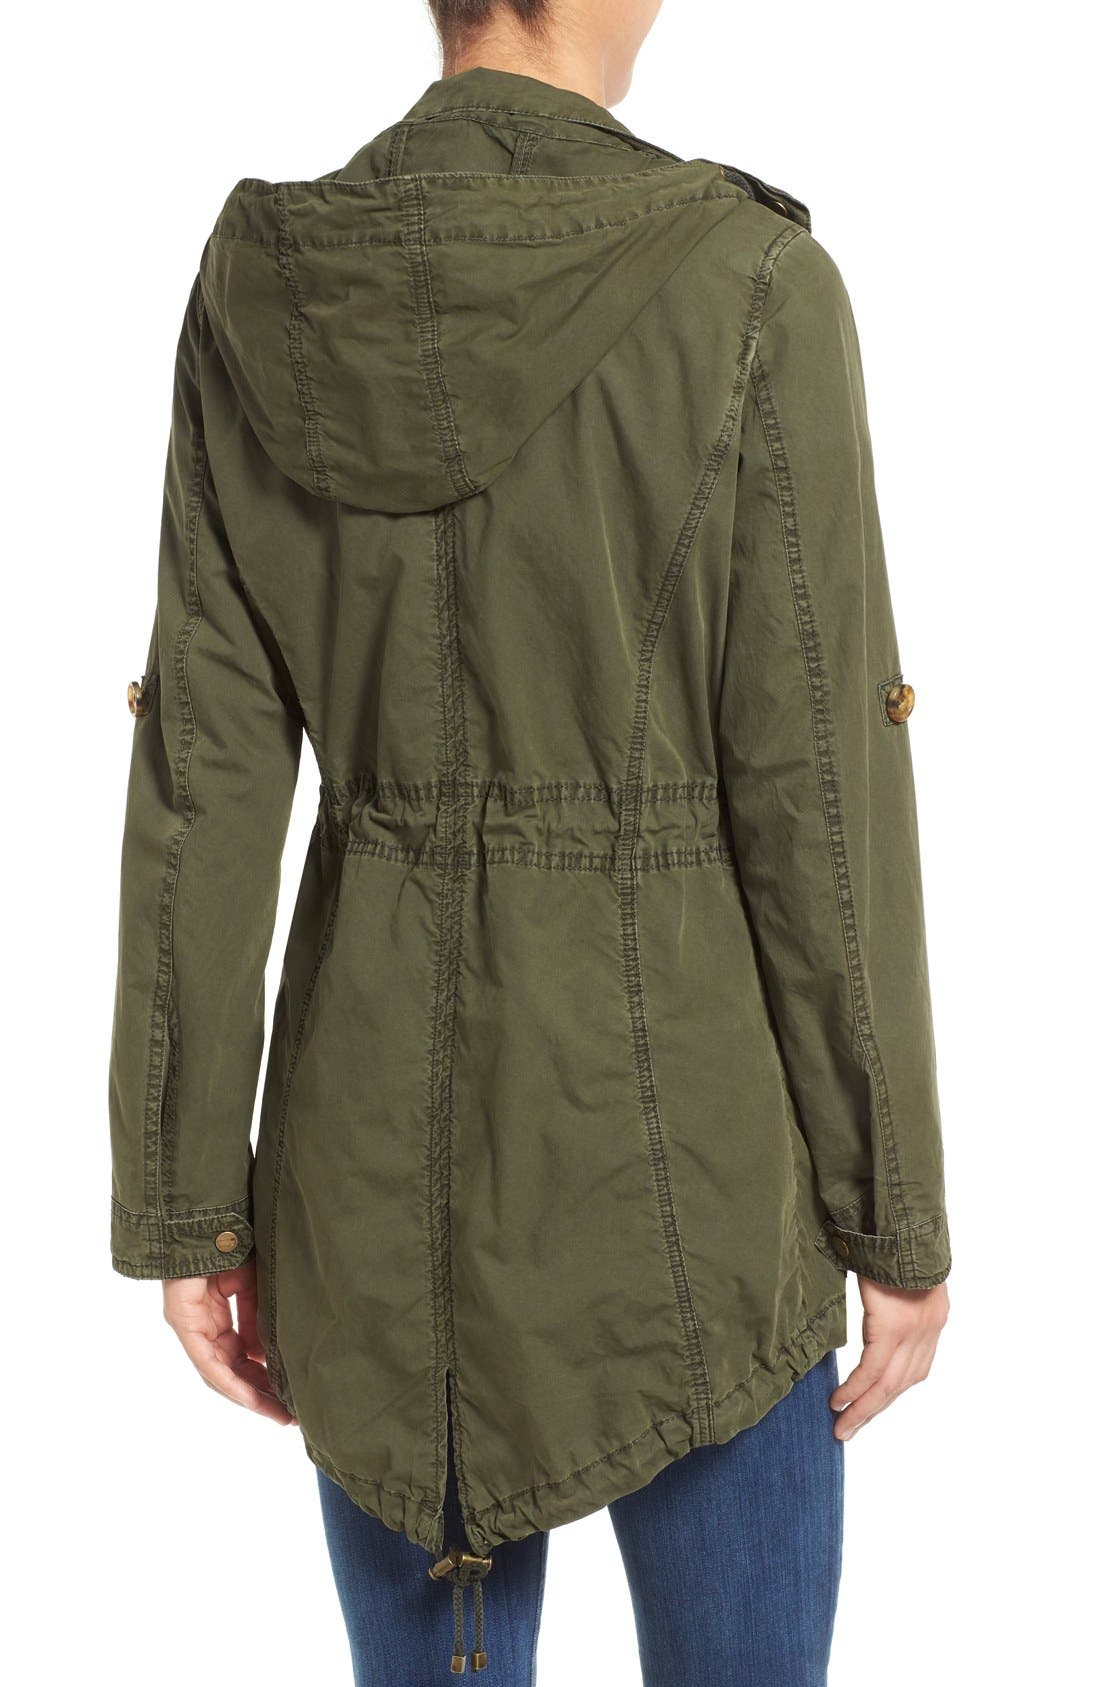 Parachute Hooded Cotton Utility Jacket,                             Alternate thumbnail 2, color,                             Army Green